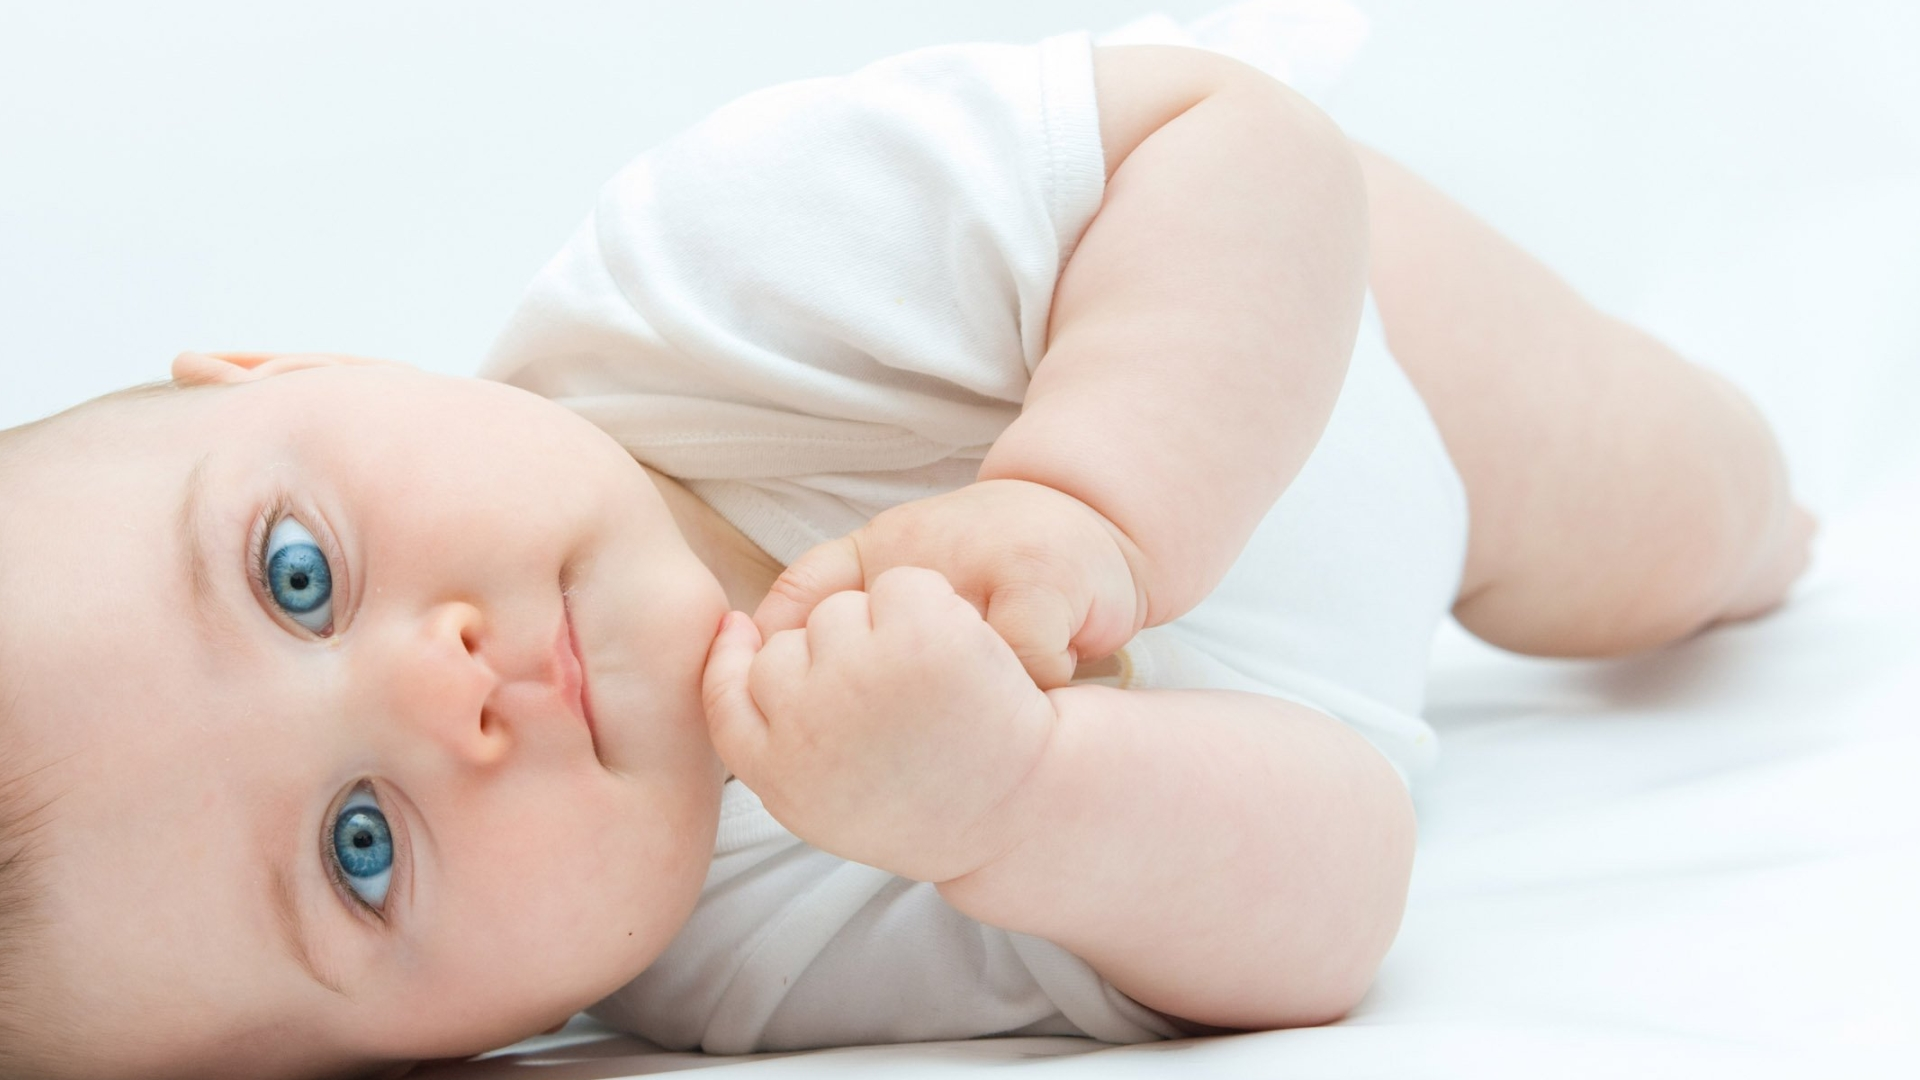 Cute baby images wallpapers free download